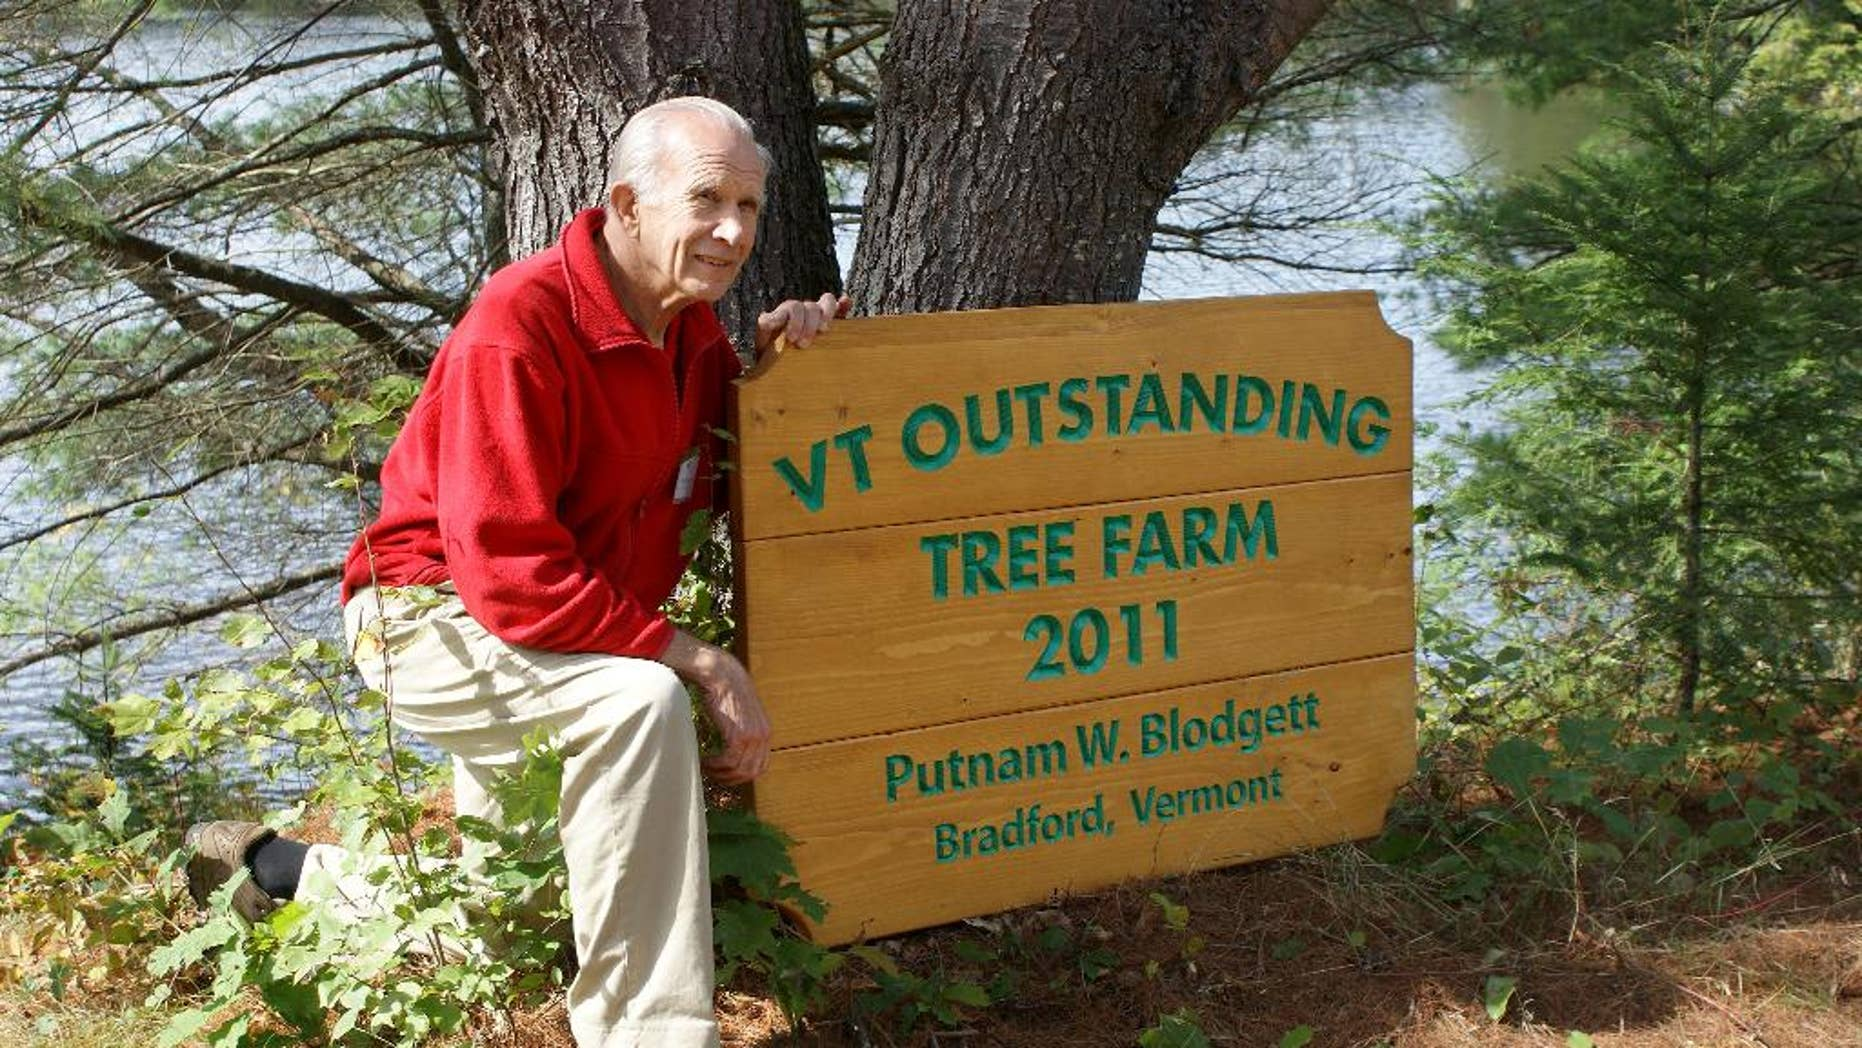 """In this 2011 photo, Putnam """"Put"""" Blodgett poses by a sign announcing he was named Vermont's 2011 Outstanding Tree Farmer in Bradford, Vt. Blodgett, president of the Vermont Woodlands Association, has implemented a succession plan for his 670 acres family owned forest land by forming a limited liability company and establishing a conservation easement on the land that prohibits development and mandates professional forest management. (AP Photo/Vermont Woodlands Association)"""